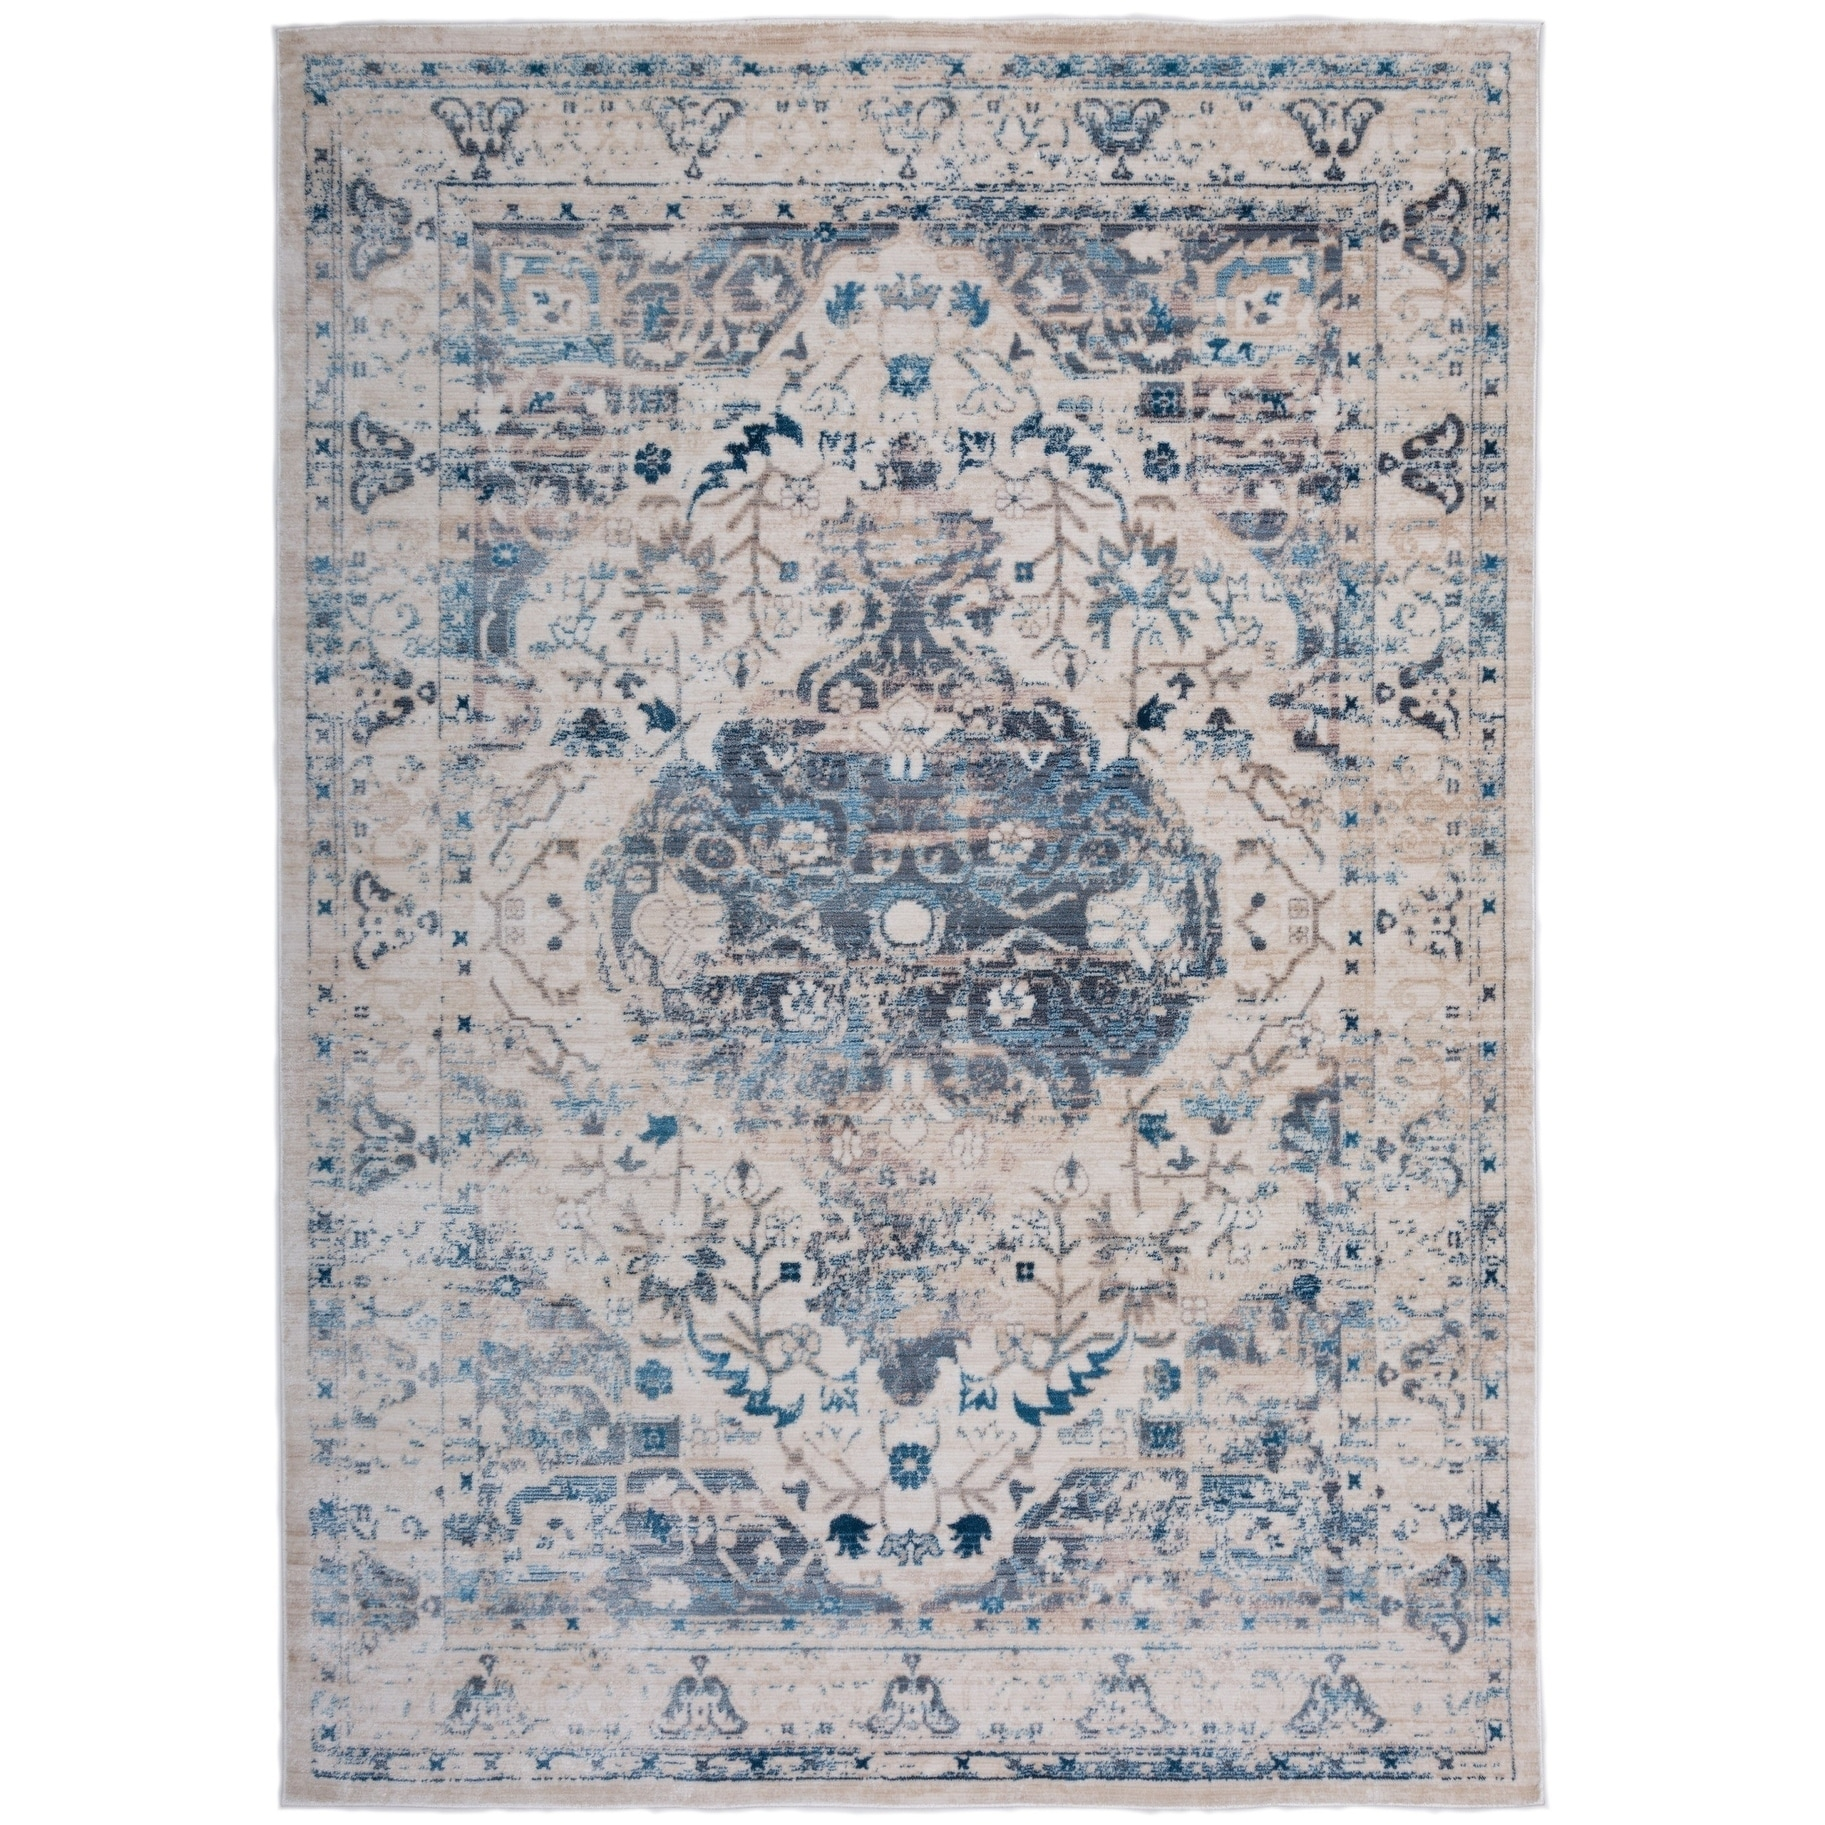 Traditional Medallion Distressed Floral Beige Area Rug or Runner